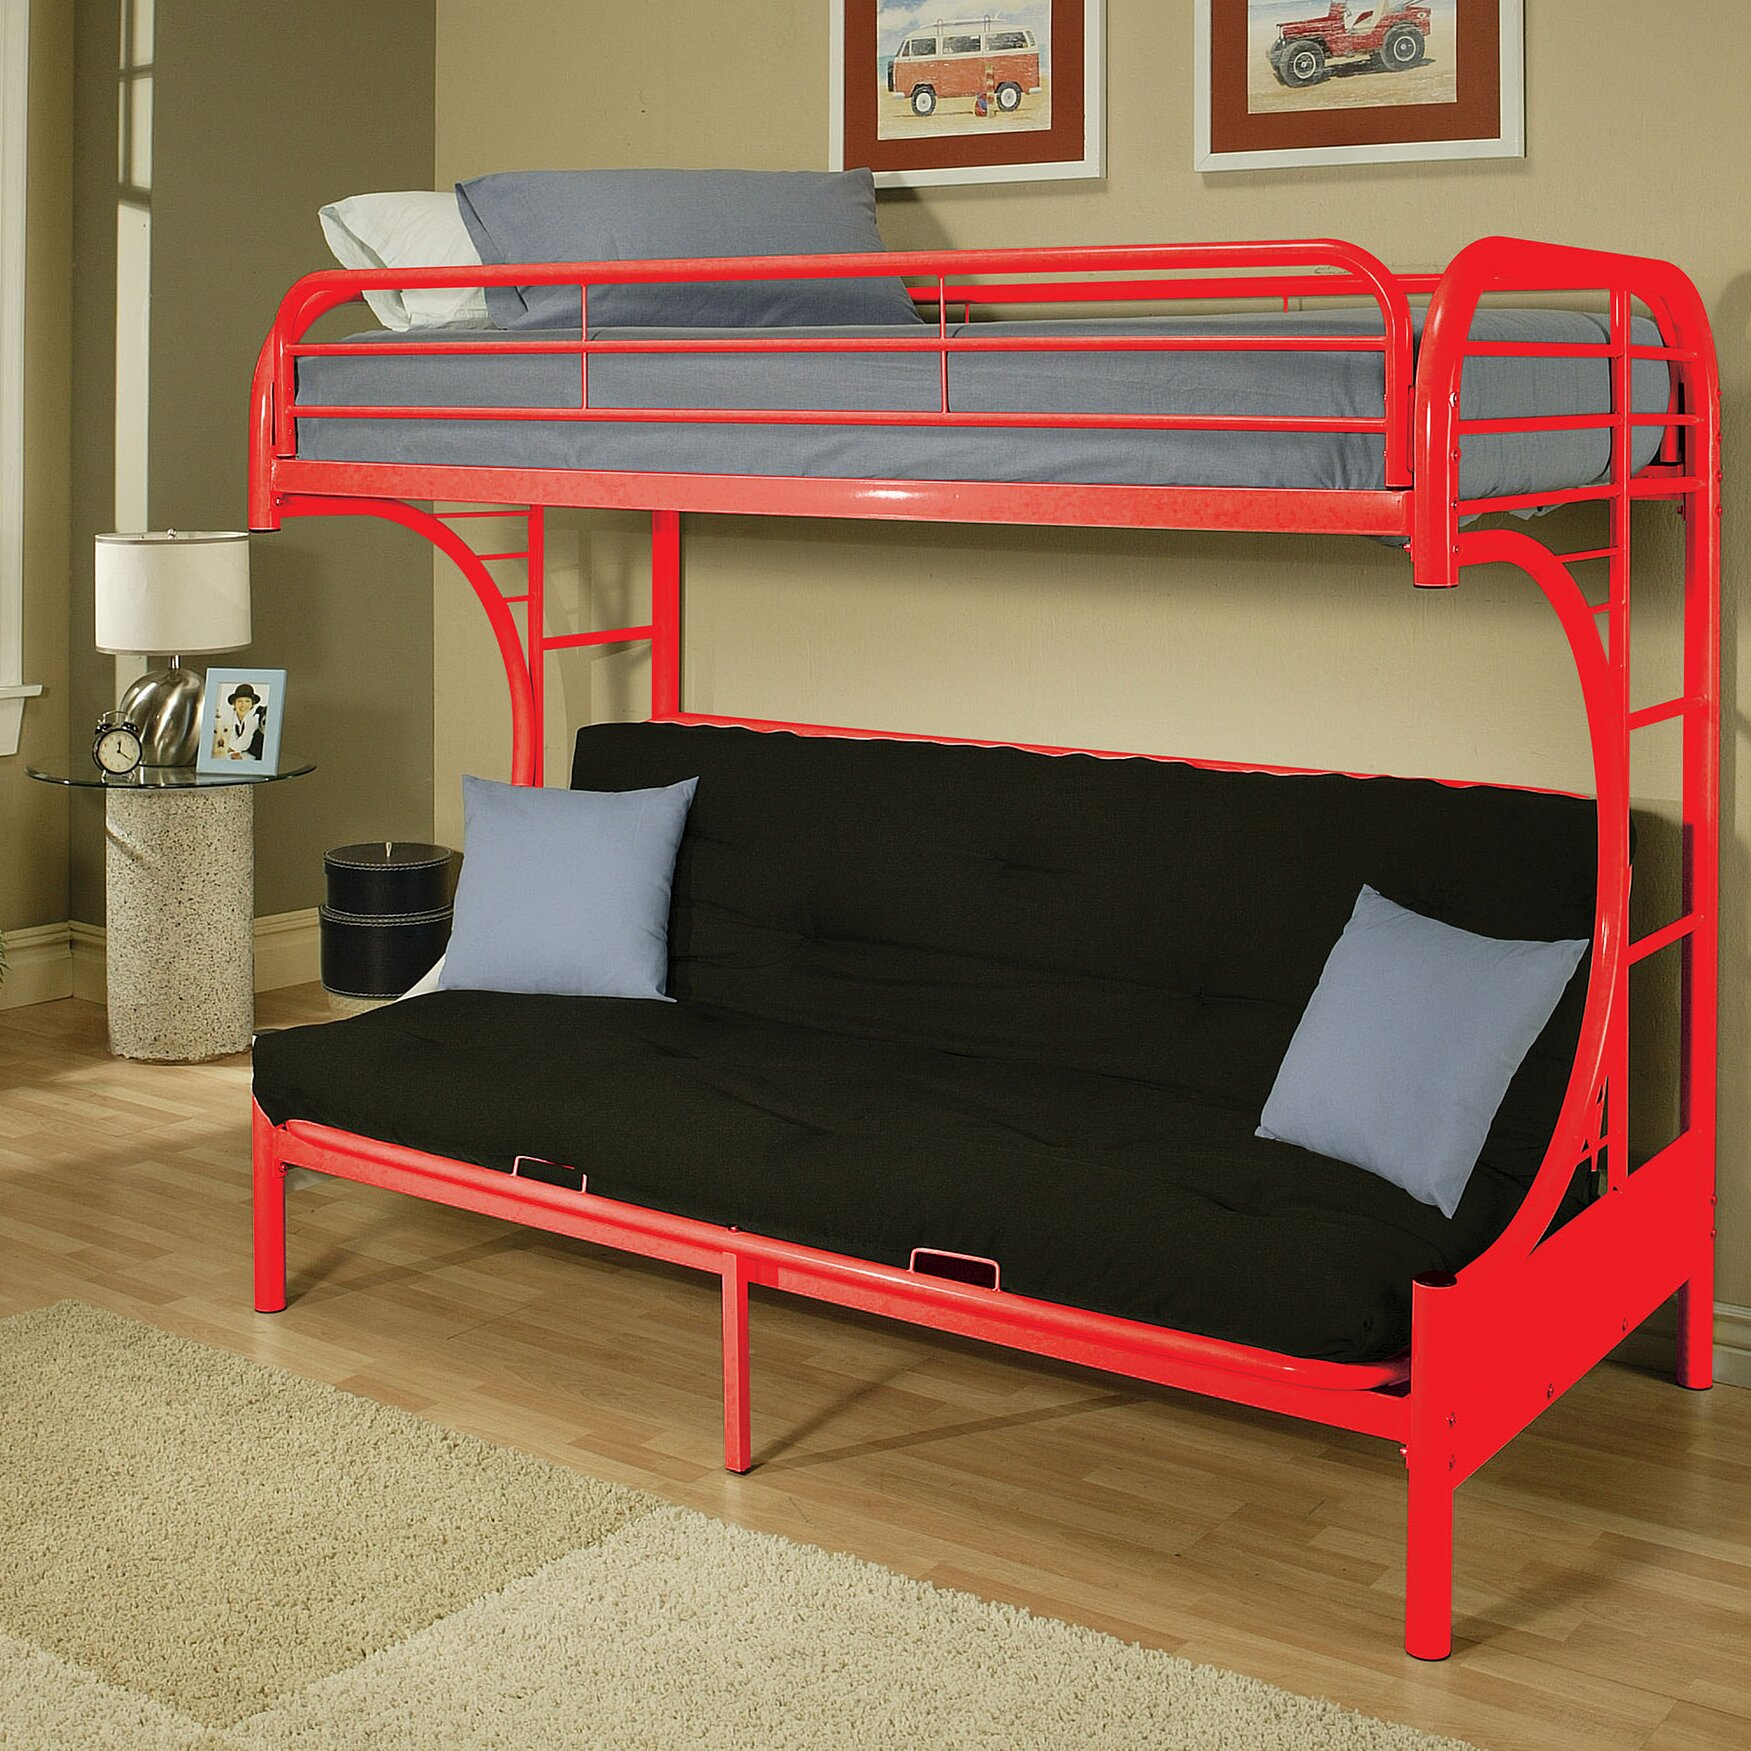 Bunk bed with couch on bottom - Eclipse Futon Bunk Bed